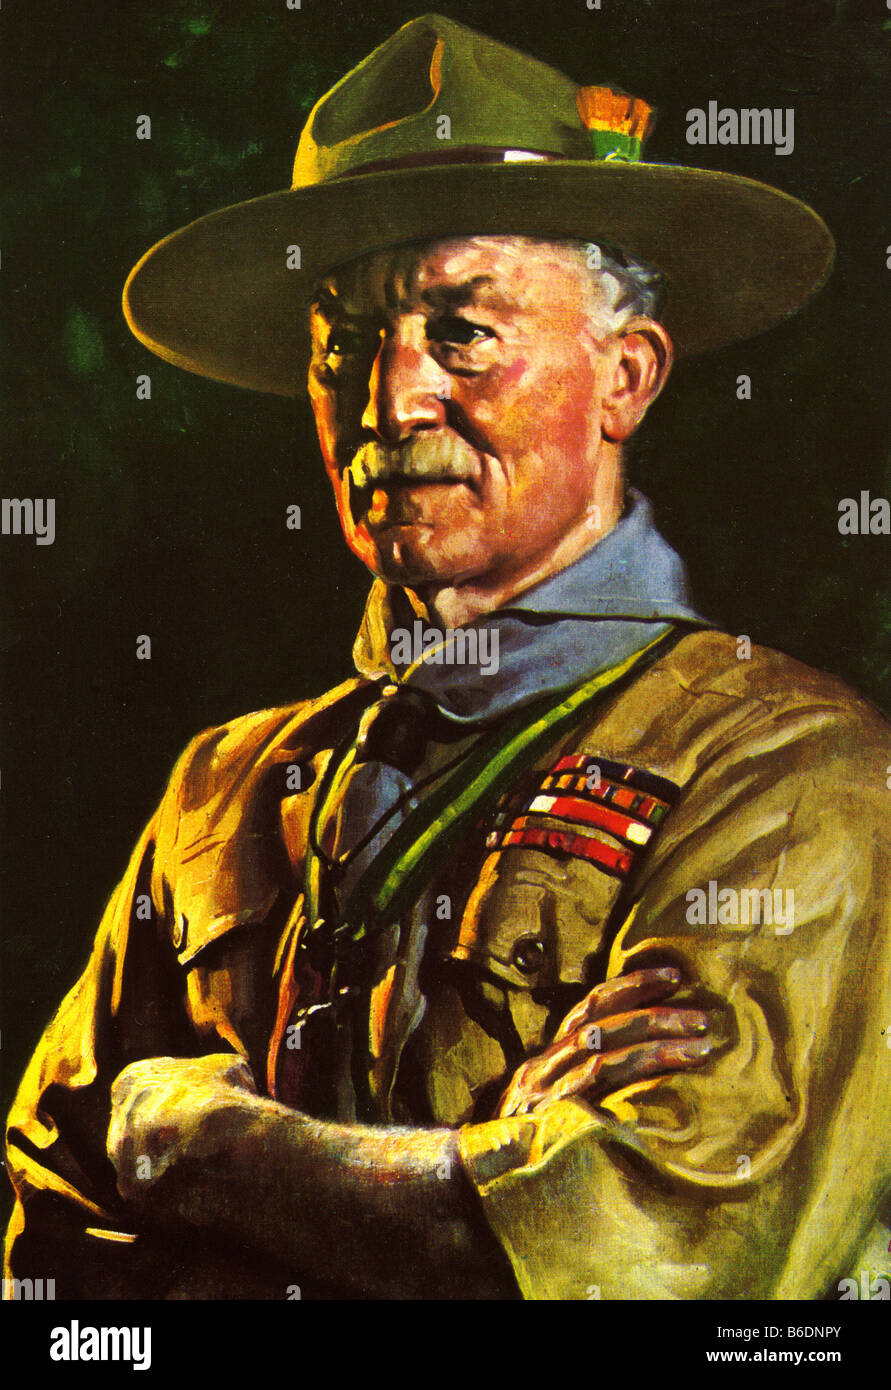 lord robert baden powell of gilwelll Lord baden-powell of gilwell, 1857—1941 robert stephenson smyth baden-powell was born in london1 england on february 22, 1857, the day americans.